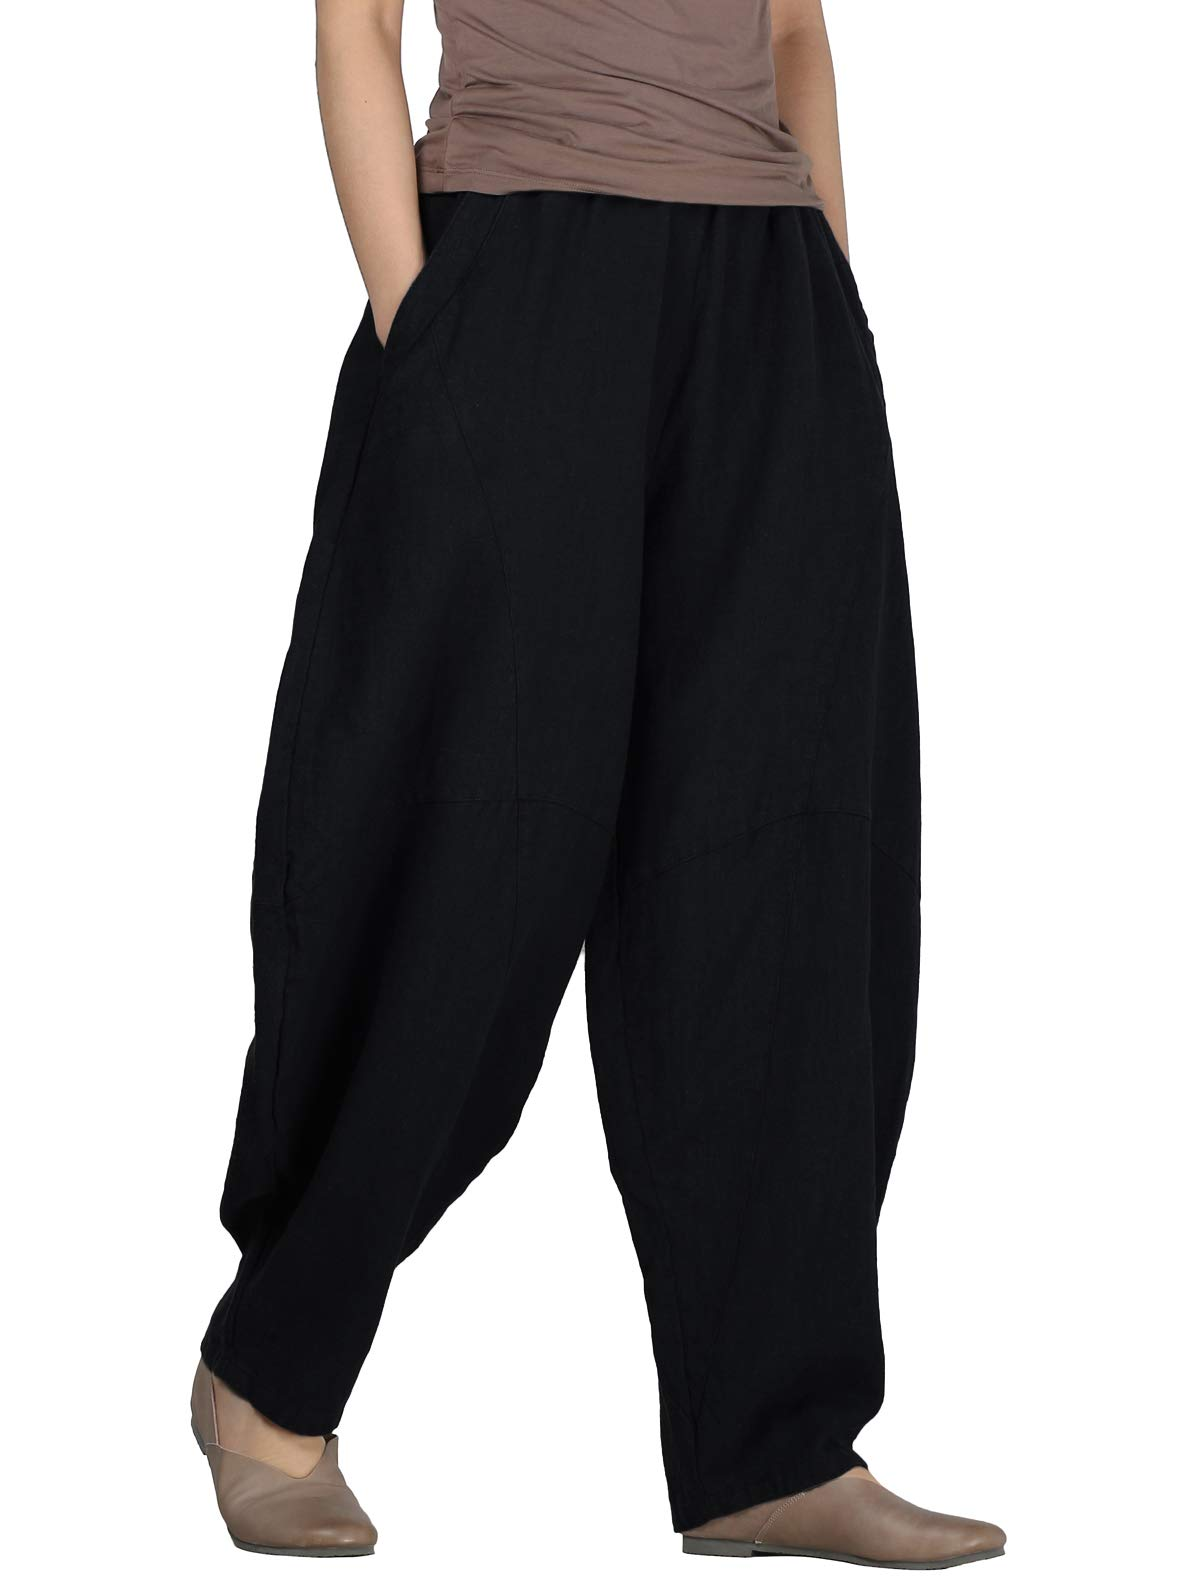 Mordenmiss Women's Autumn Linen Tapered Pants Loose Cropped Trousers with Pockets XL Black